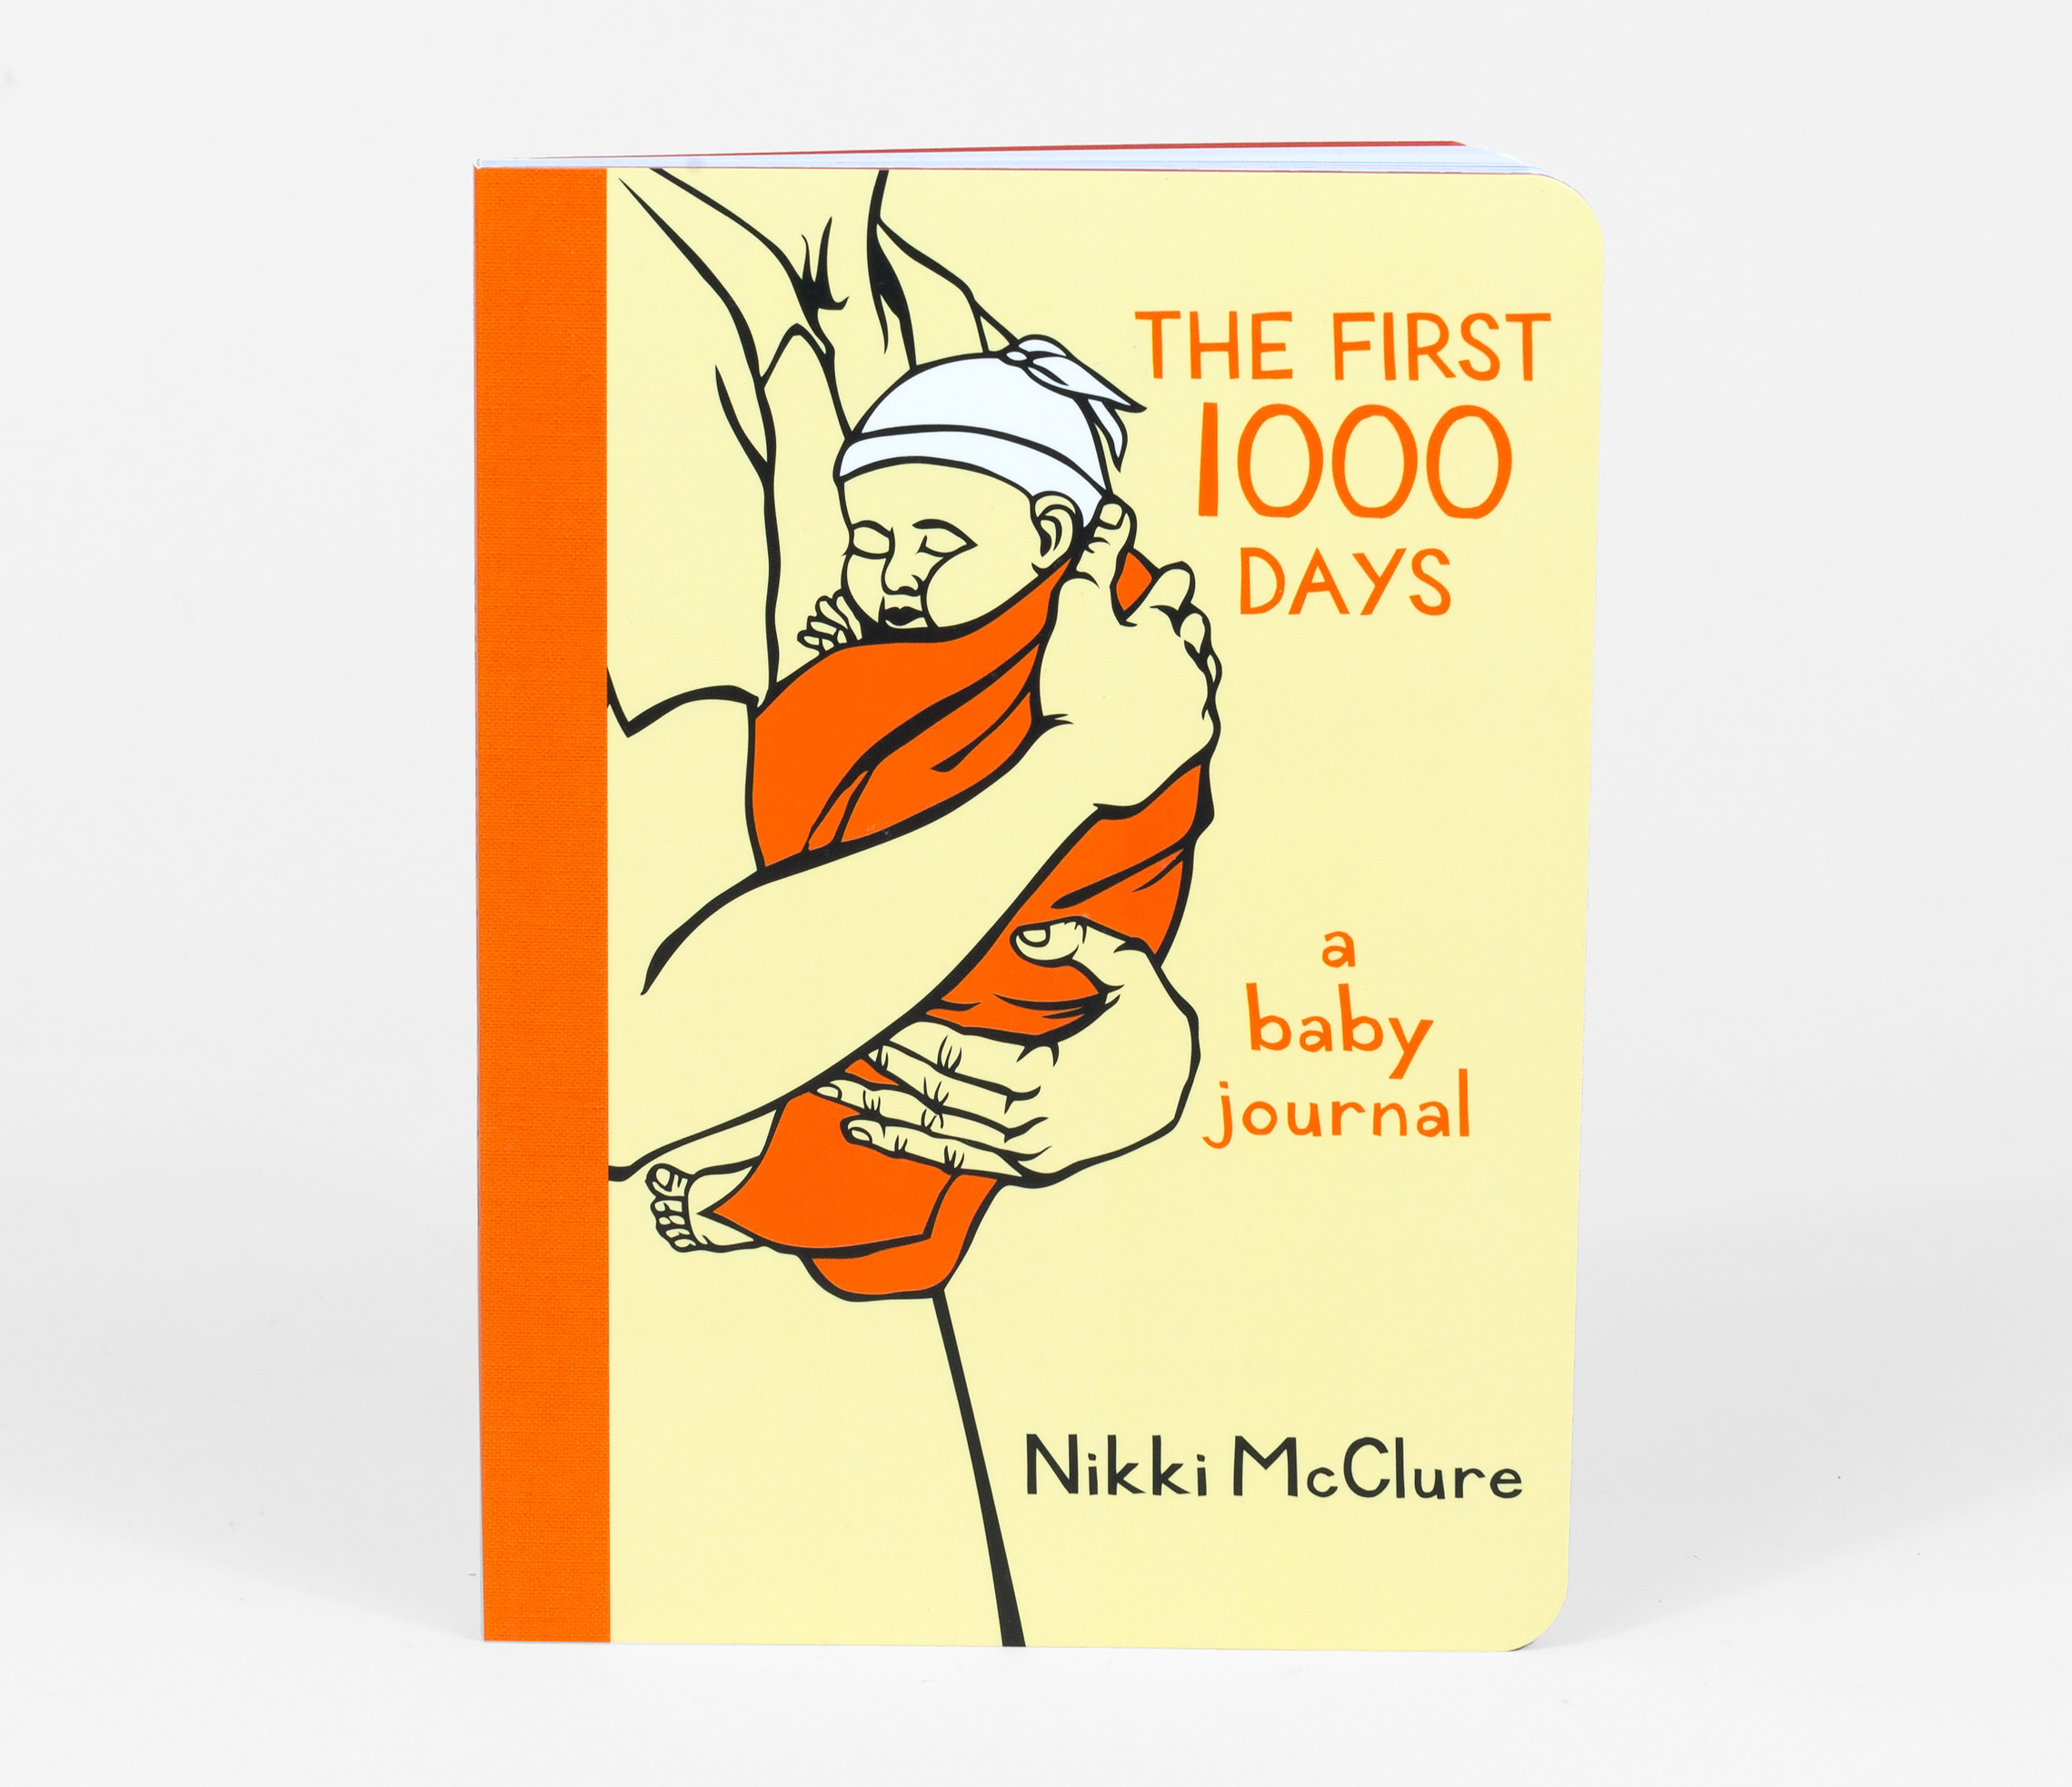 Nikki McClure - The First 1000 Days, journal